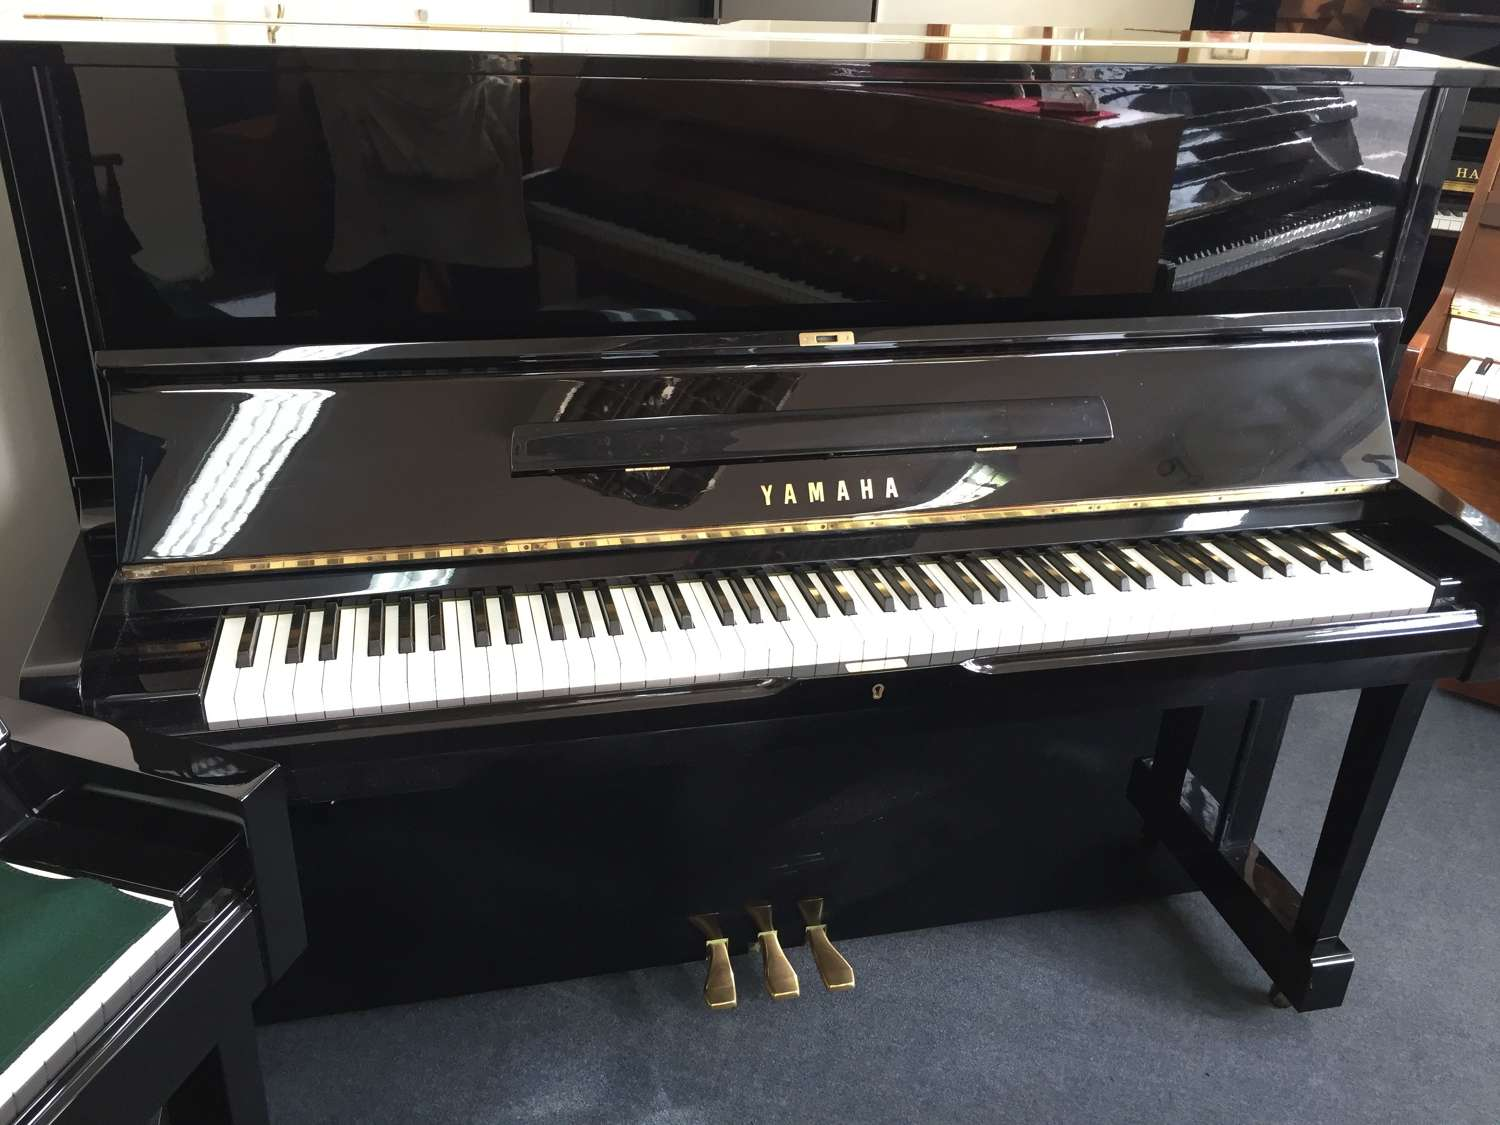 YAMAHA U1 piano for sale